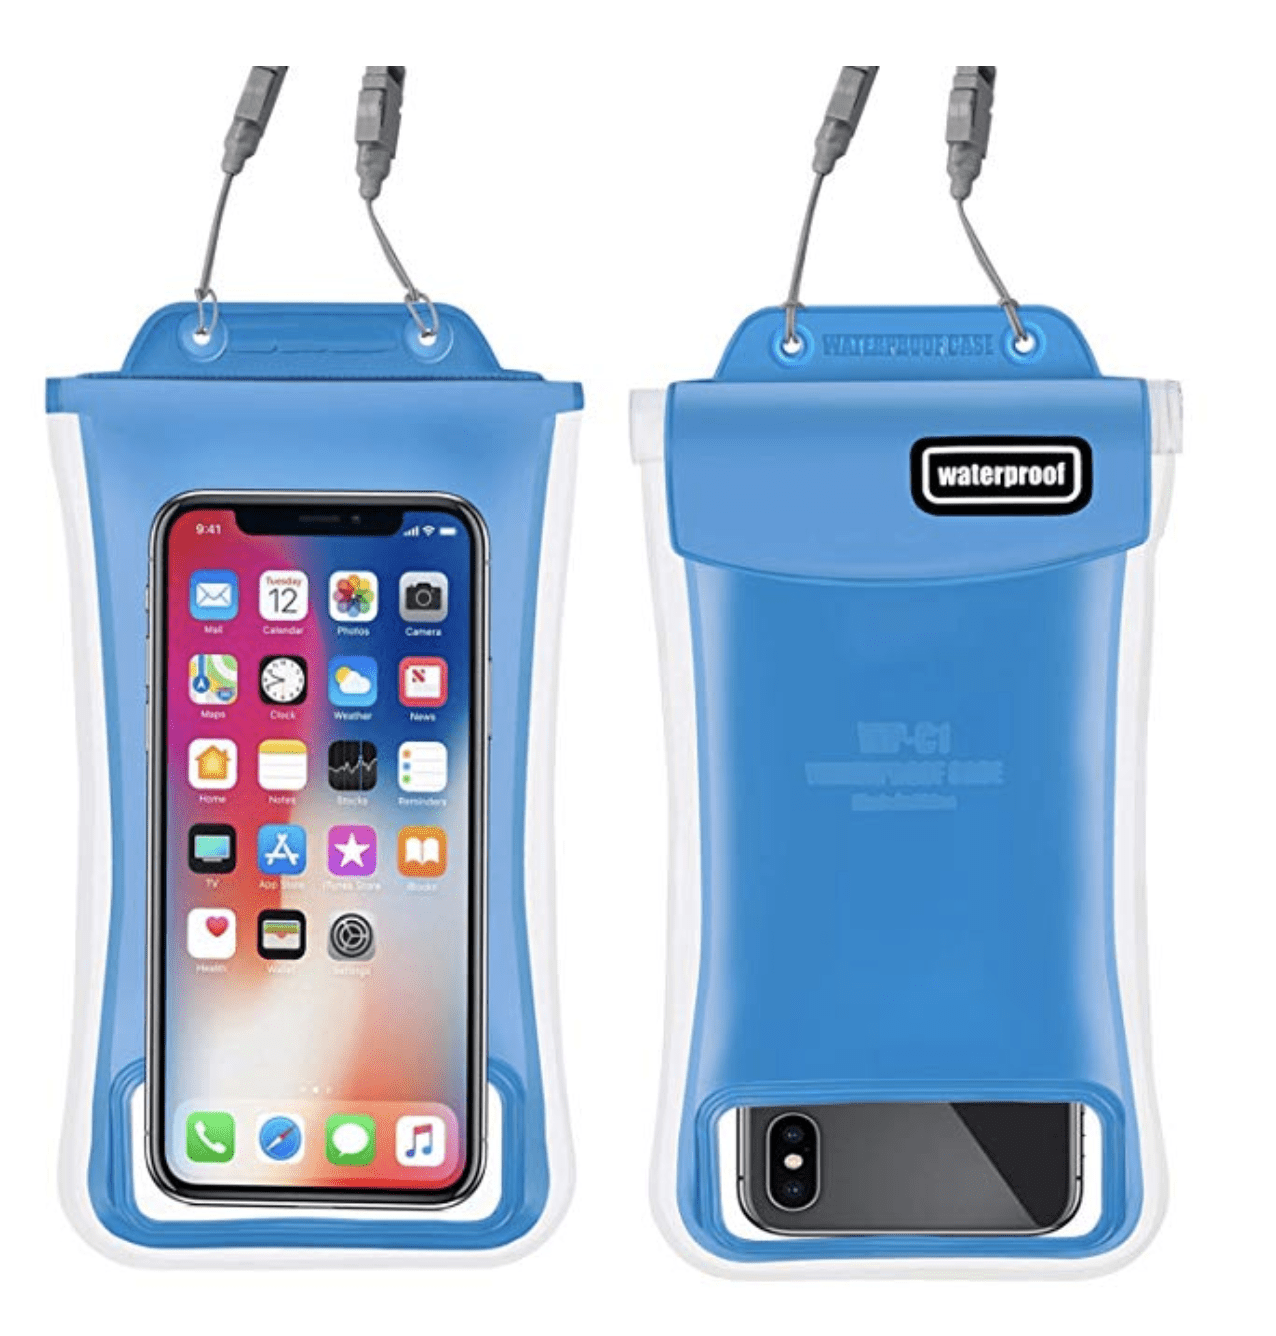 waterproof phone pouch things to pack for cruise